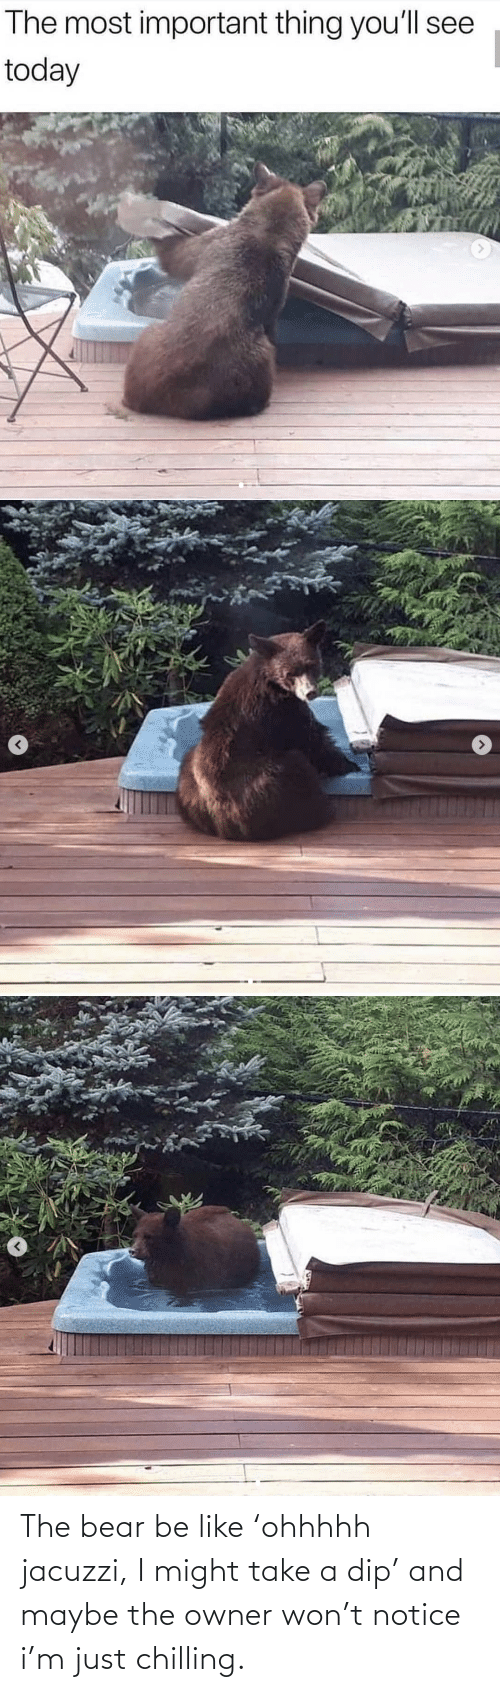 maybe: The bear be like 'ohhhhh jacuzzi, I might take a dip' and maybe the owner won't notice i'm just chilling.